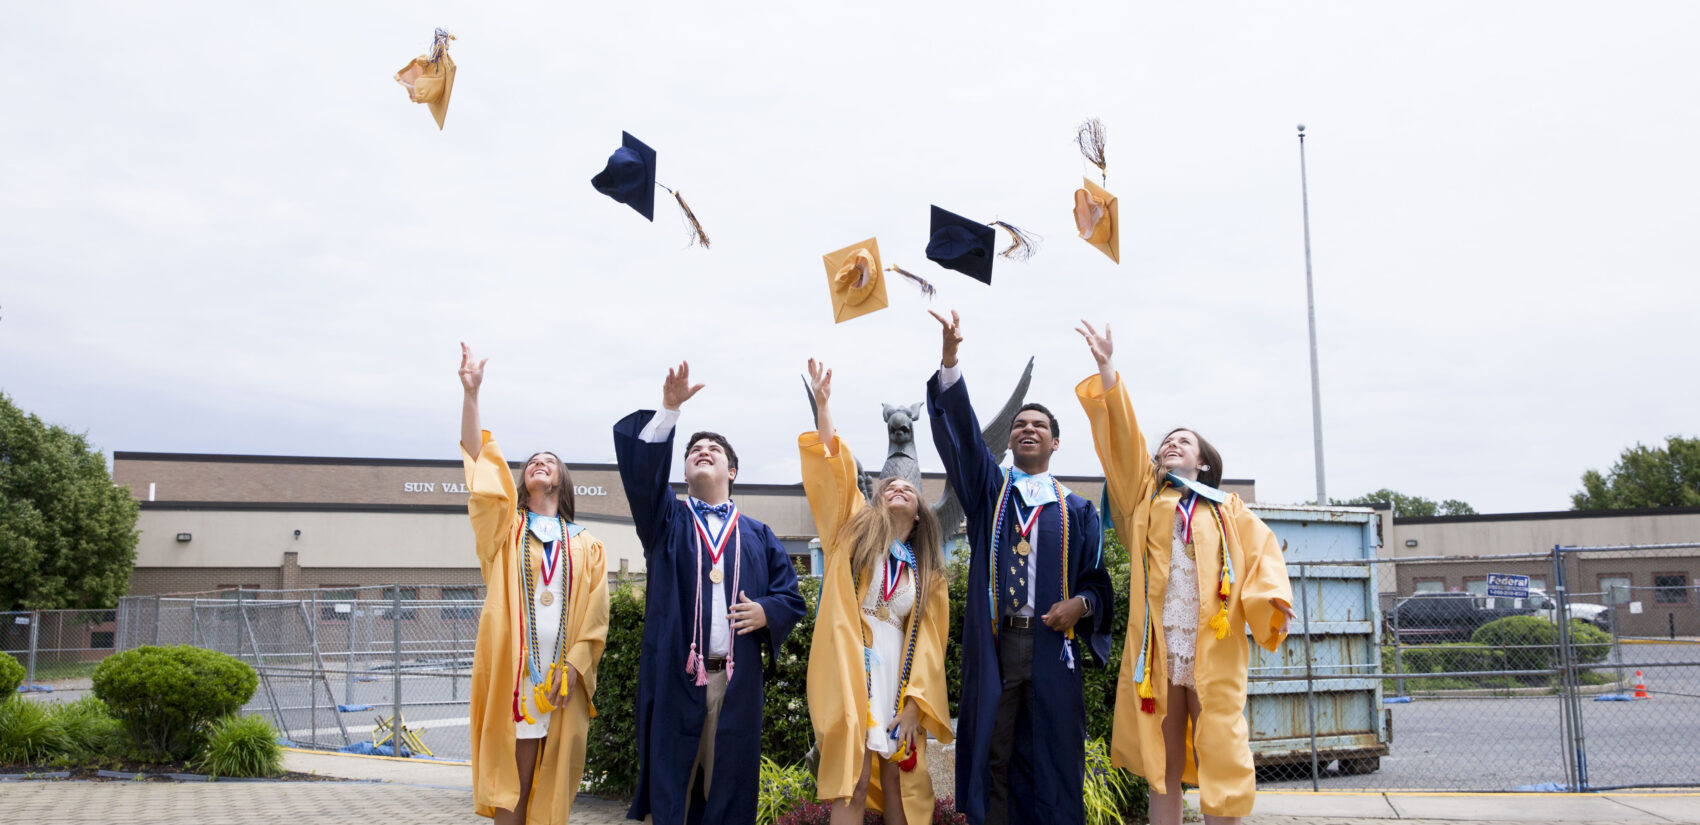 Bryson Eldridge (second to right), senior class president at his school, throws his graduation cap with other class officers after a segment they recorded for virtual graduation. Sun Valley High, in the Penn-Delco School District, is about 80% white.  (Rachel Wisniewski for Keystone Crossroads)